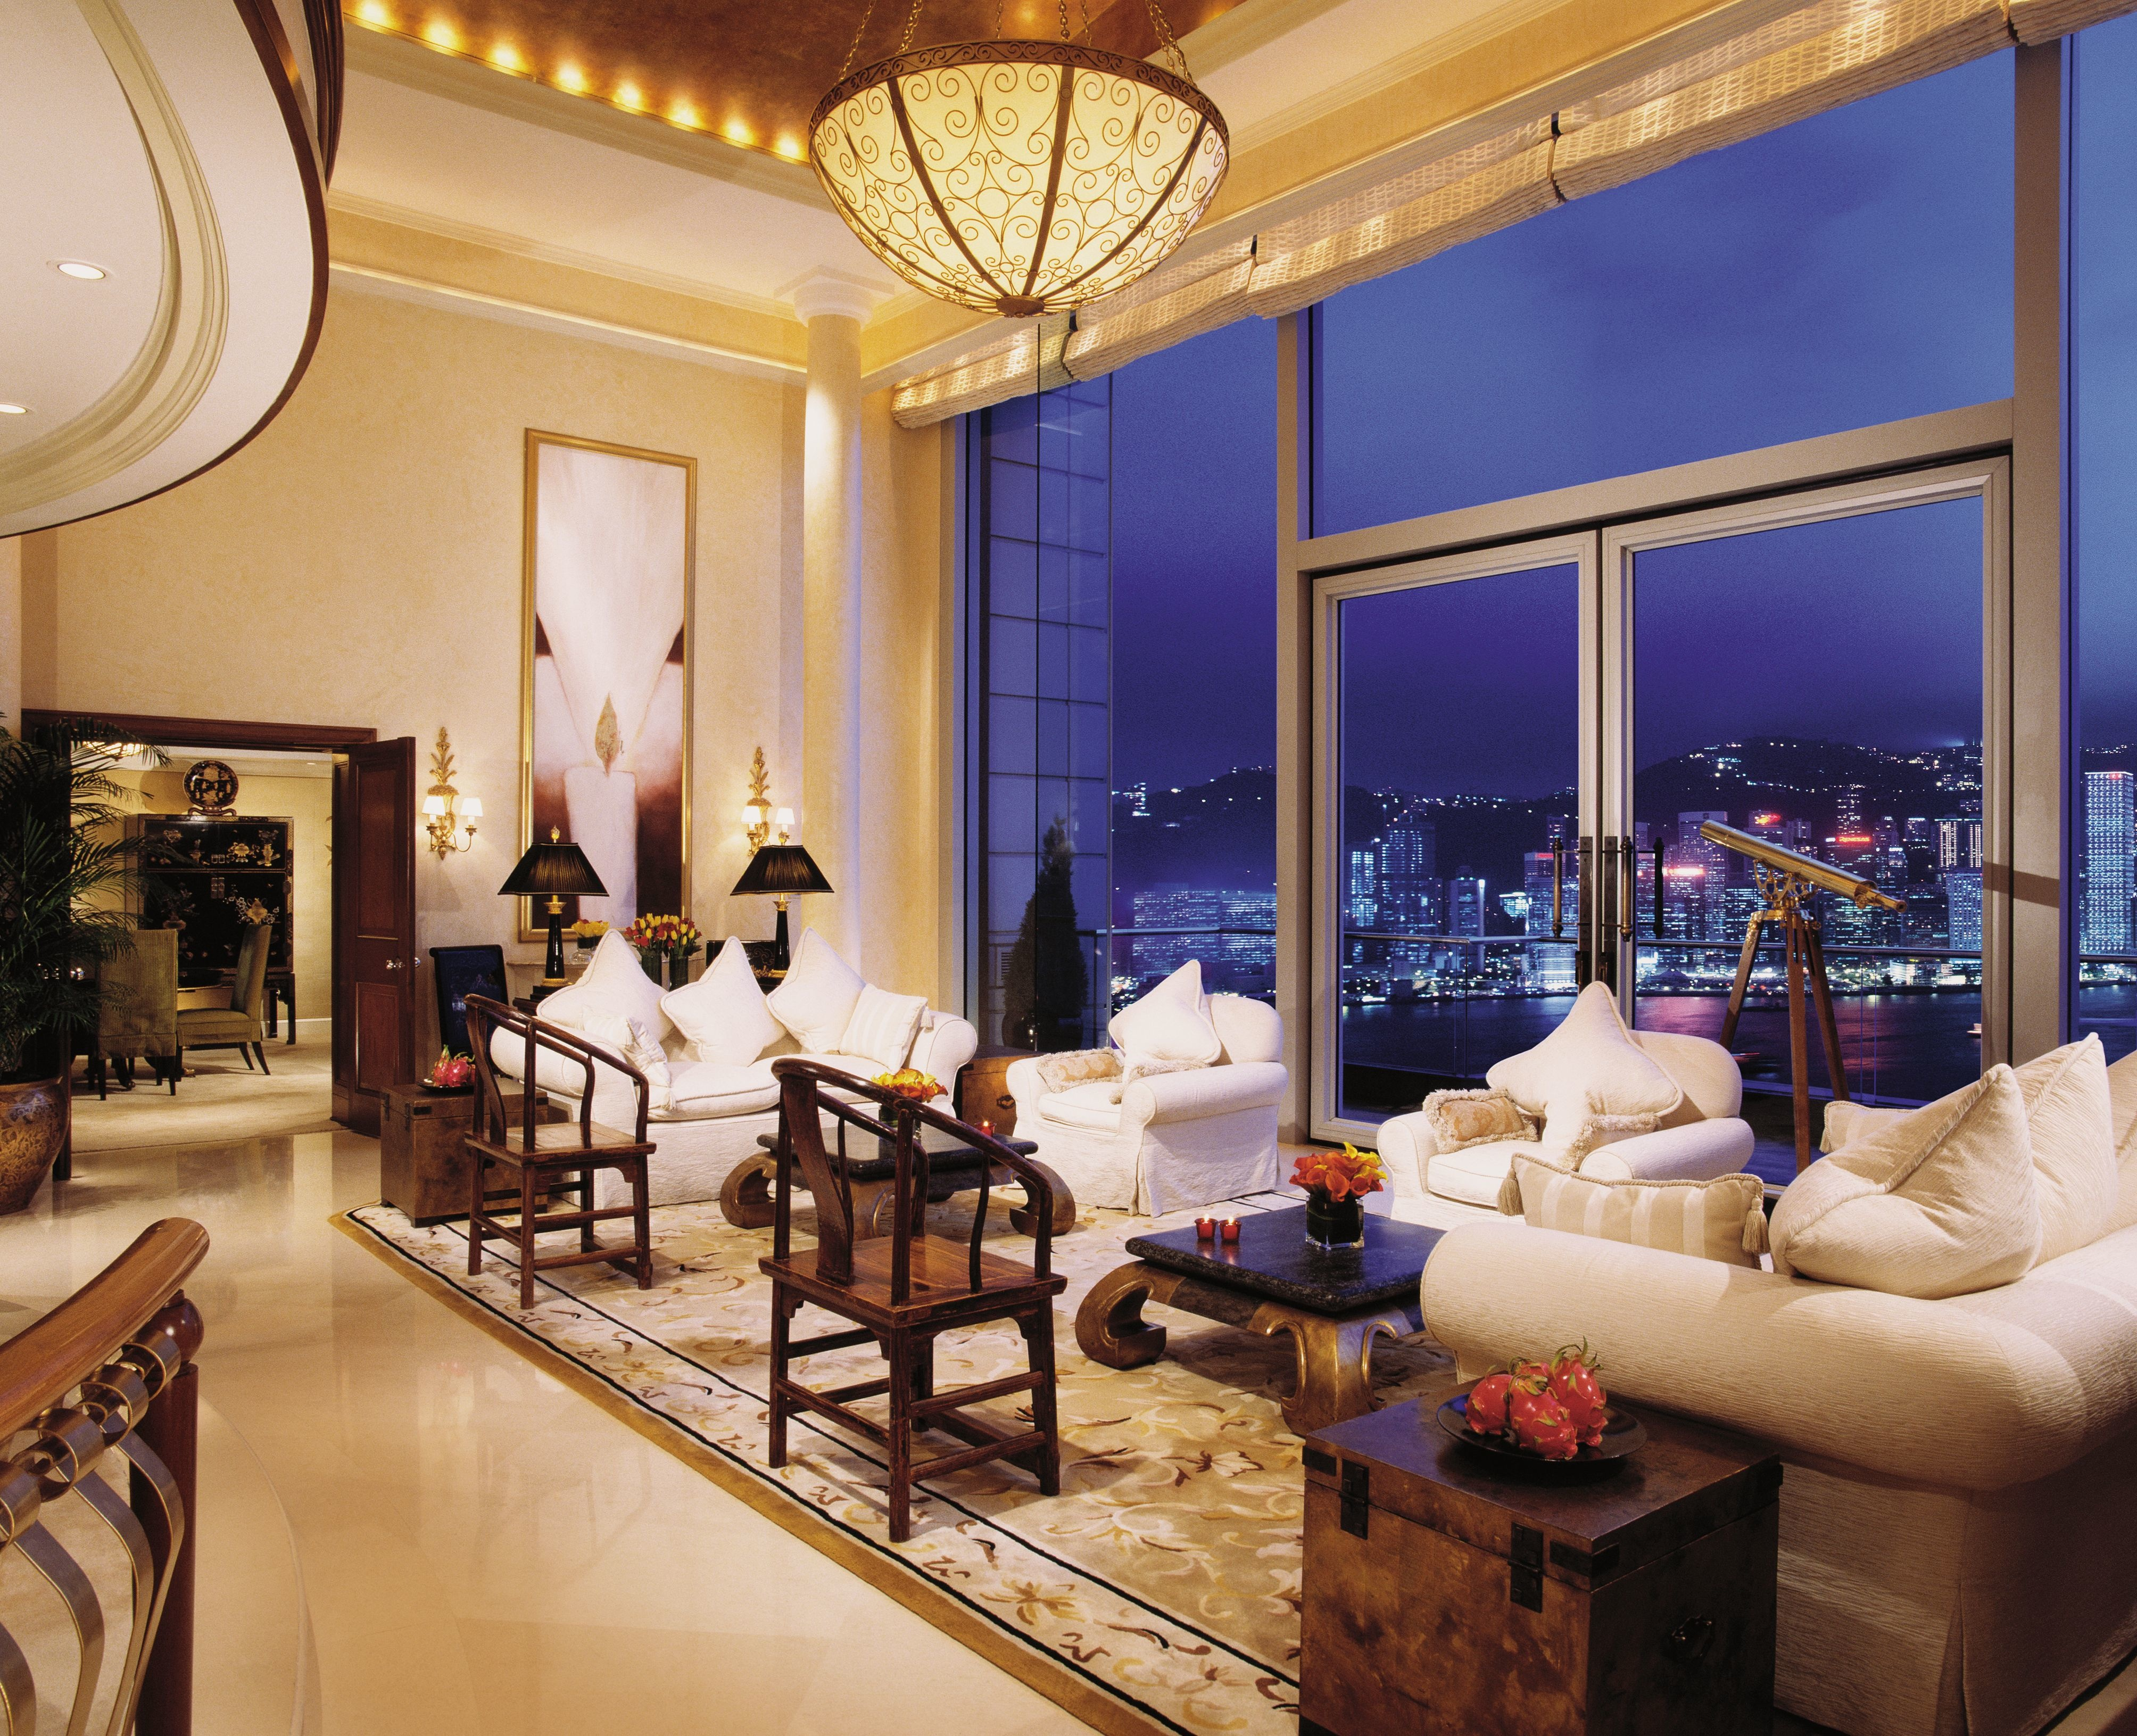 Suite Dreams Perfect Suites For The Royal Honeymoon